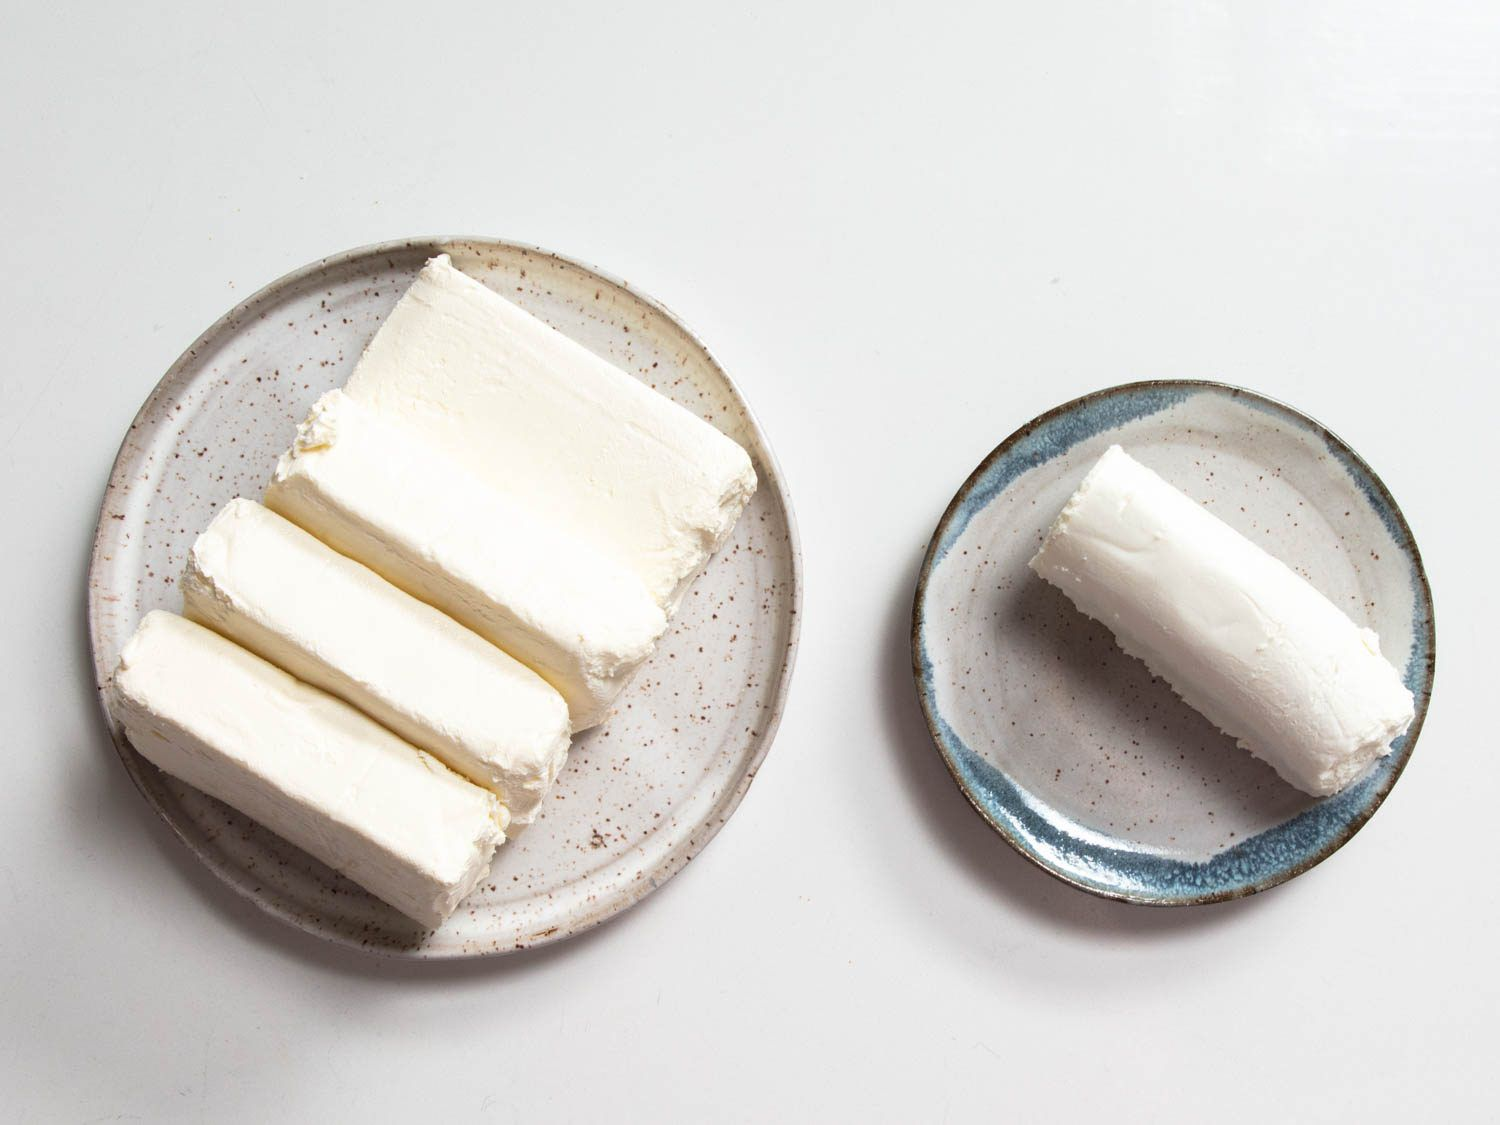 plates of cream cheese and fresh goat cheese